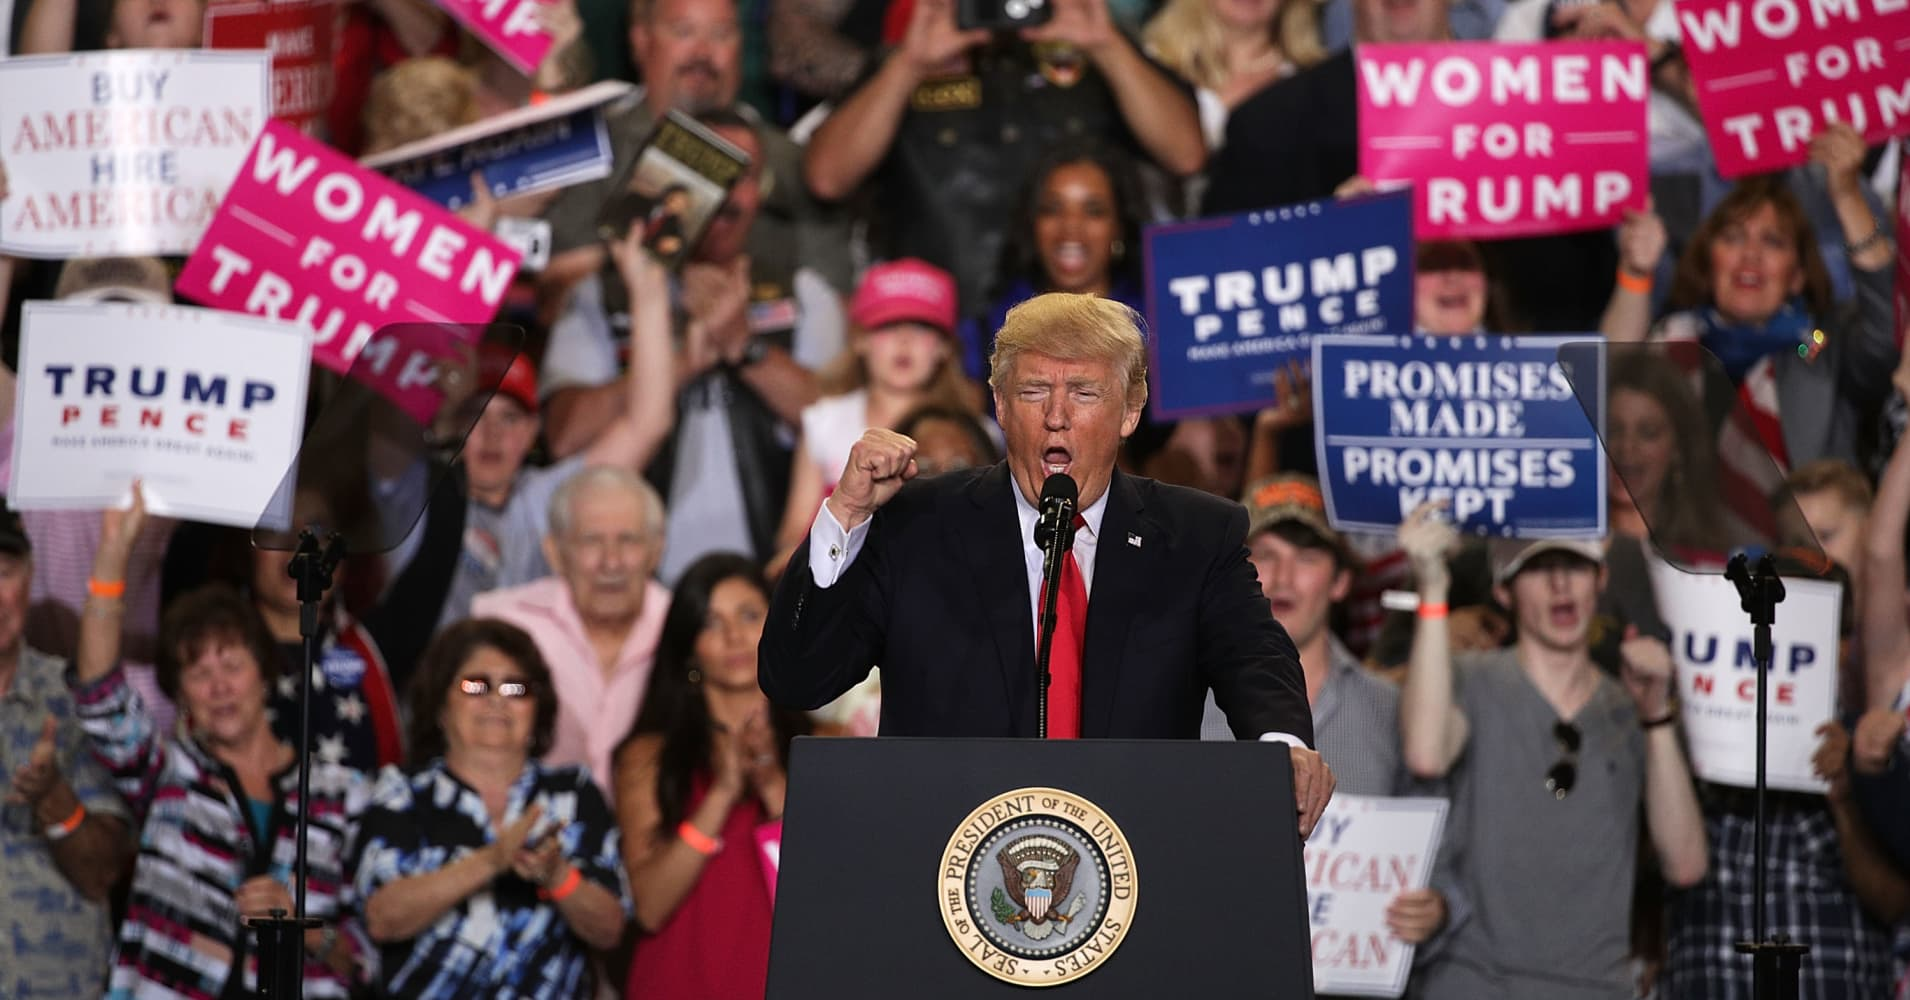 Trump hammers the media, defends his record in 100 days Pennsylvania rally